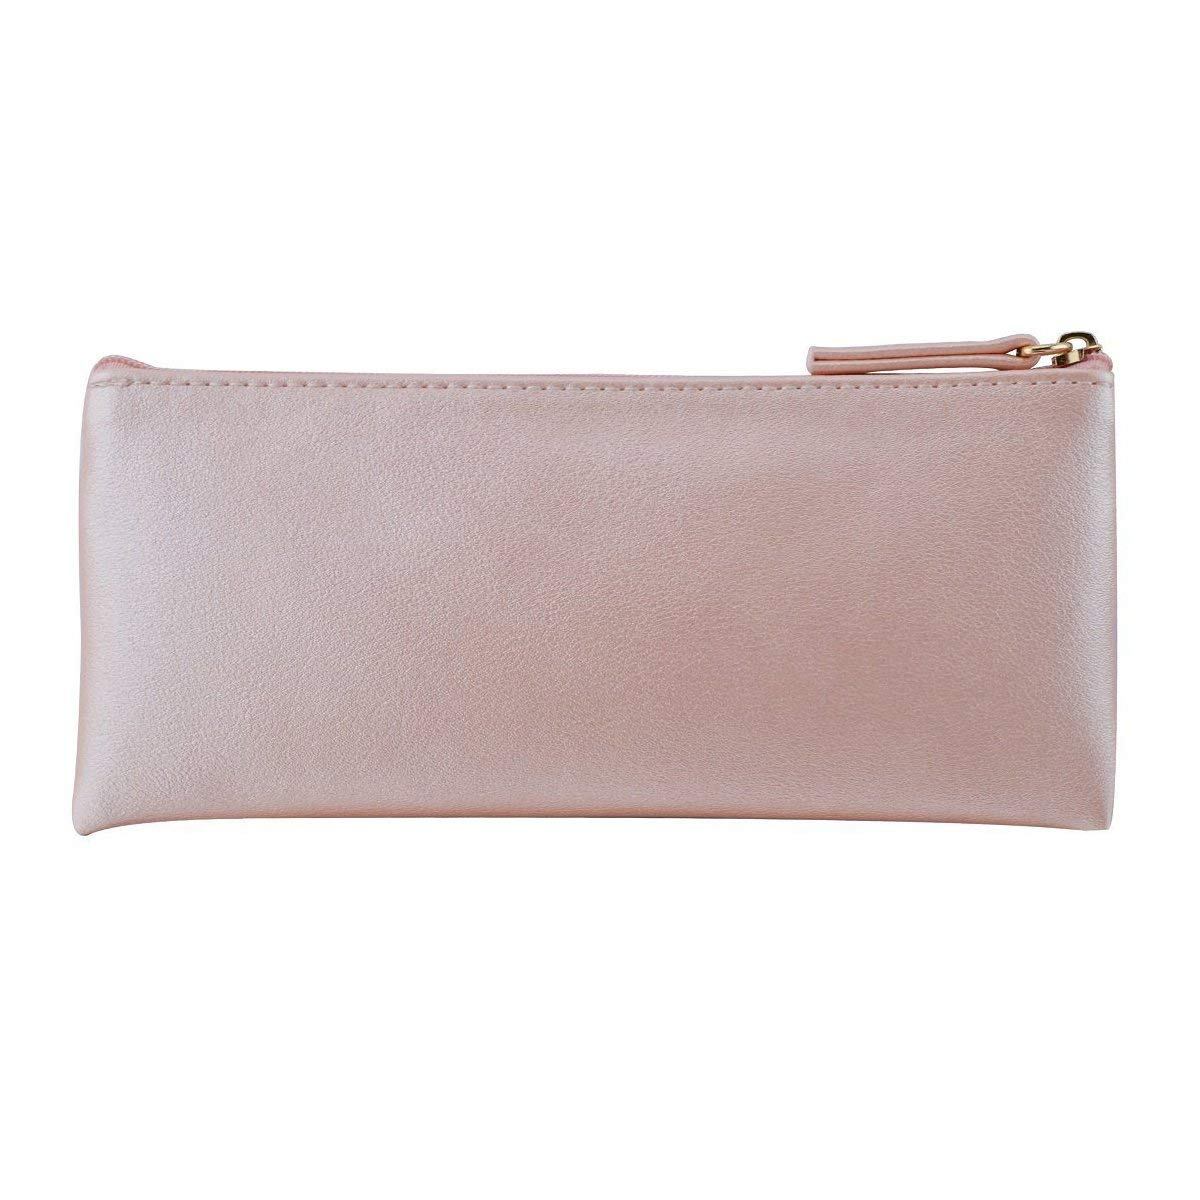 XYBAGS PU Leather Small Pencil Case Pen Bag with Zipper, PU Leather Makeup Pouch Makeup Case Cosmetic Pouch (Pink)